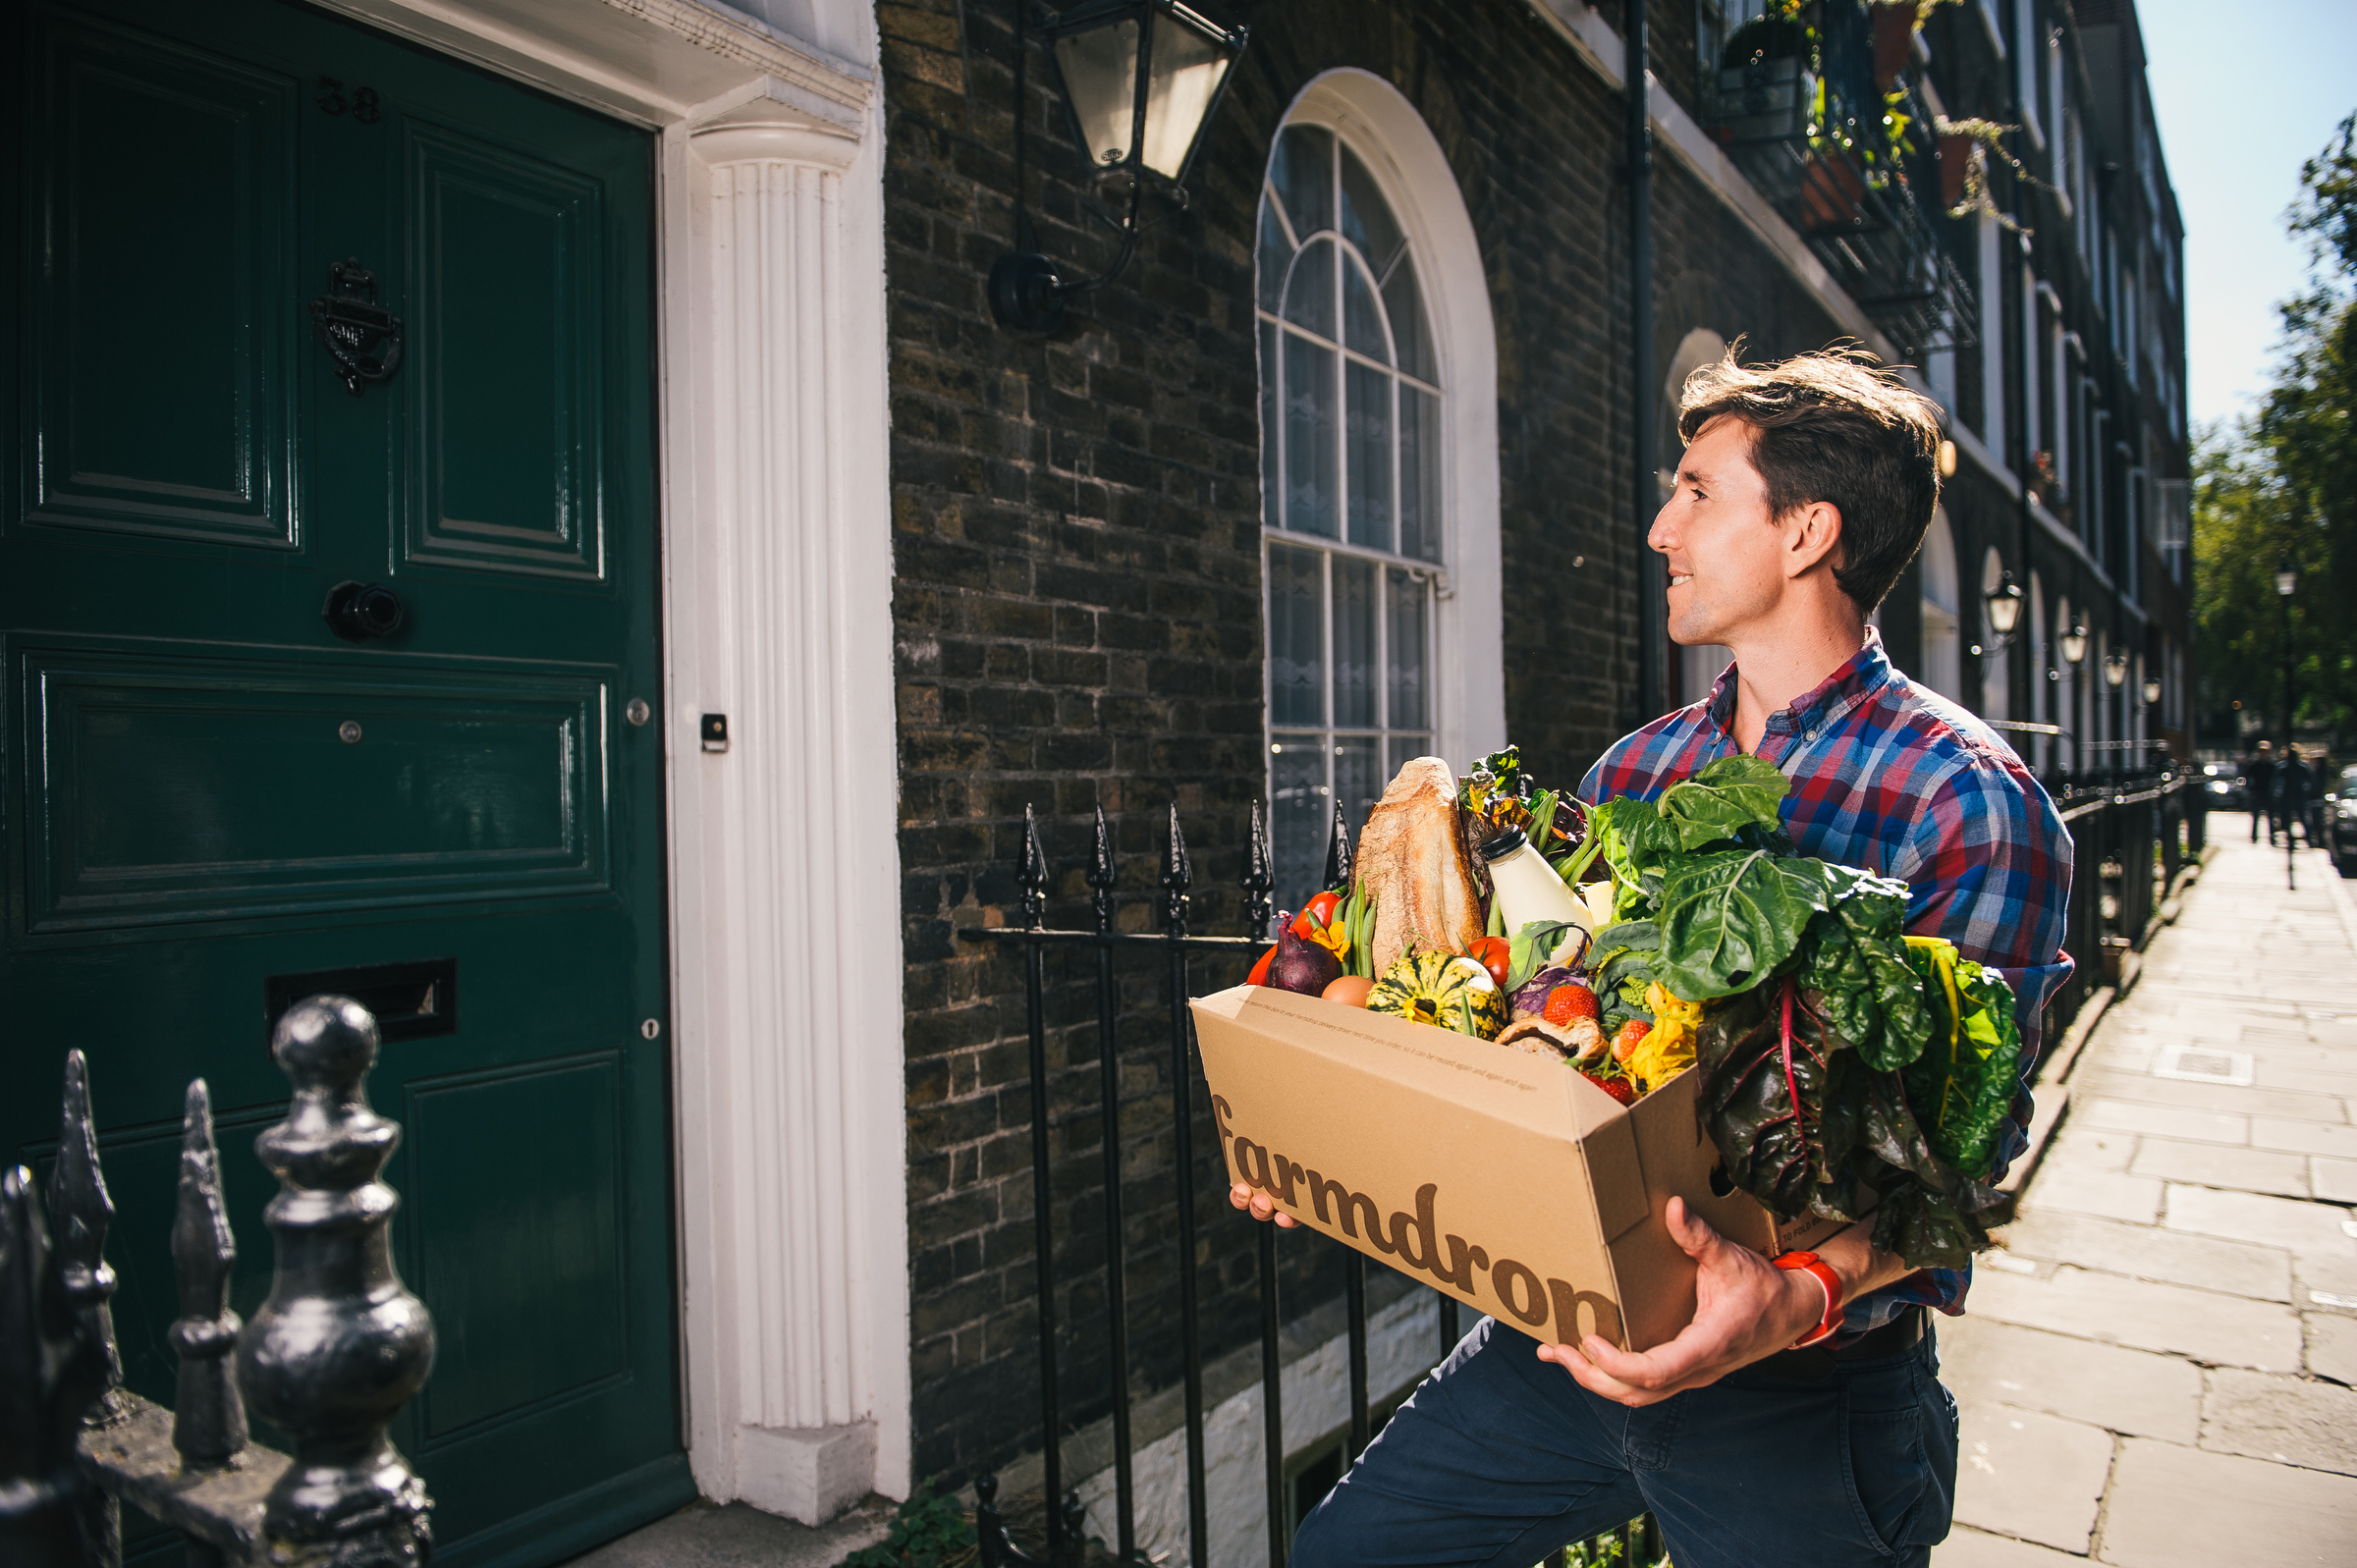 Farmdrop secures £3m in latest funding round